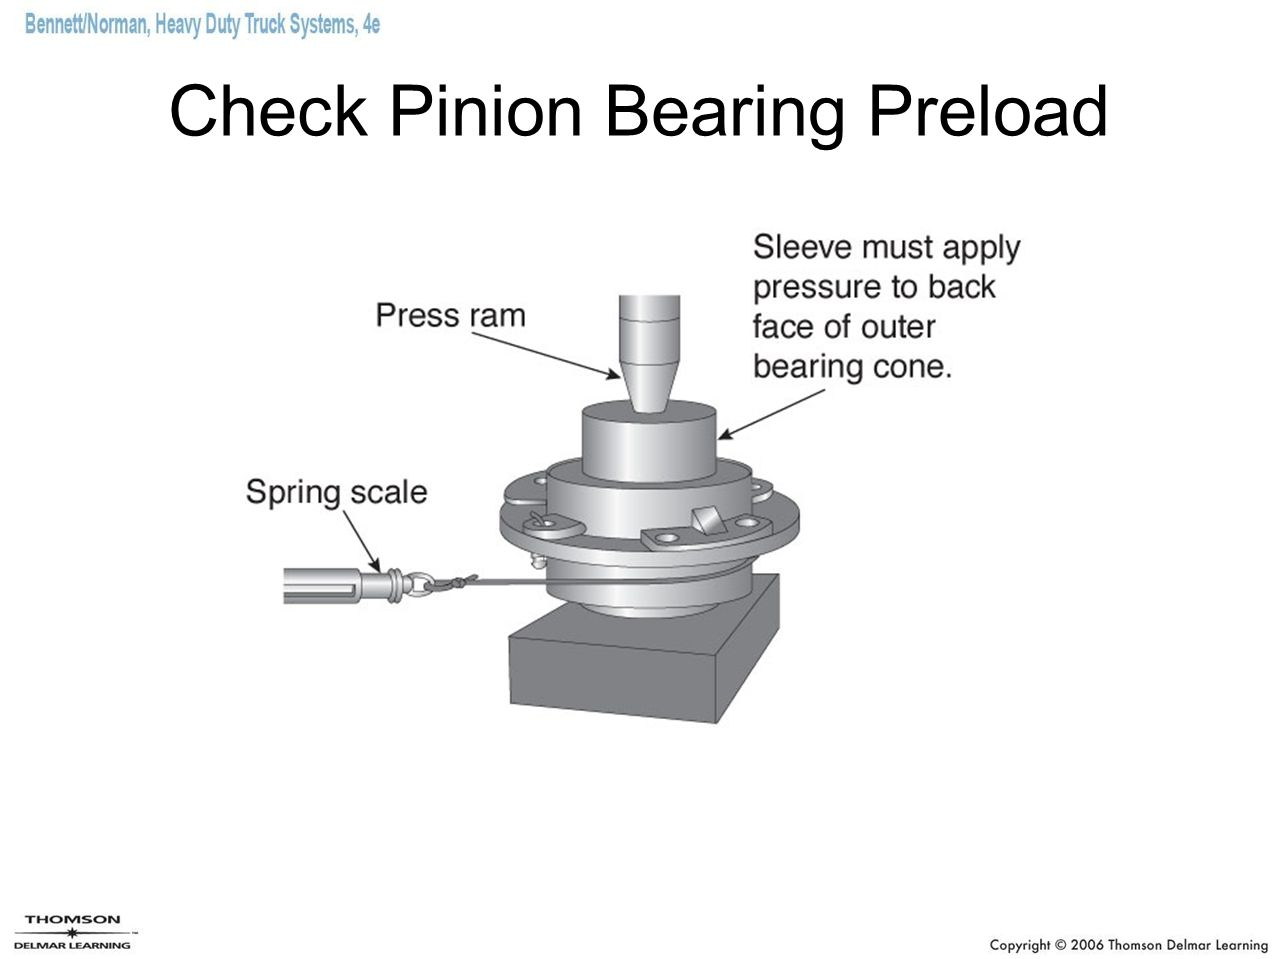 Check Pinion Bearing Preload